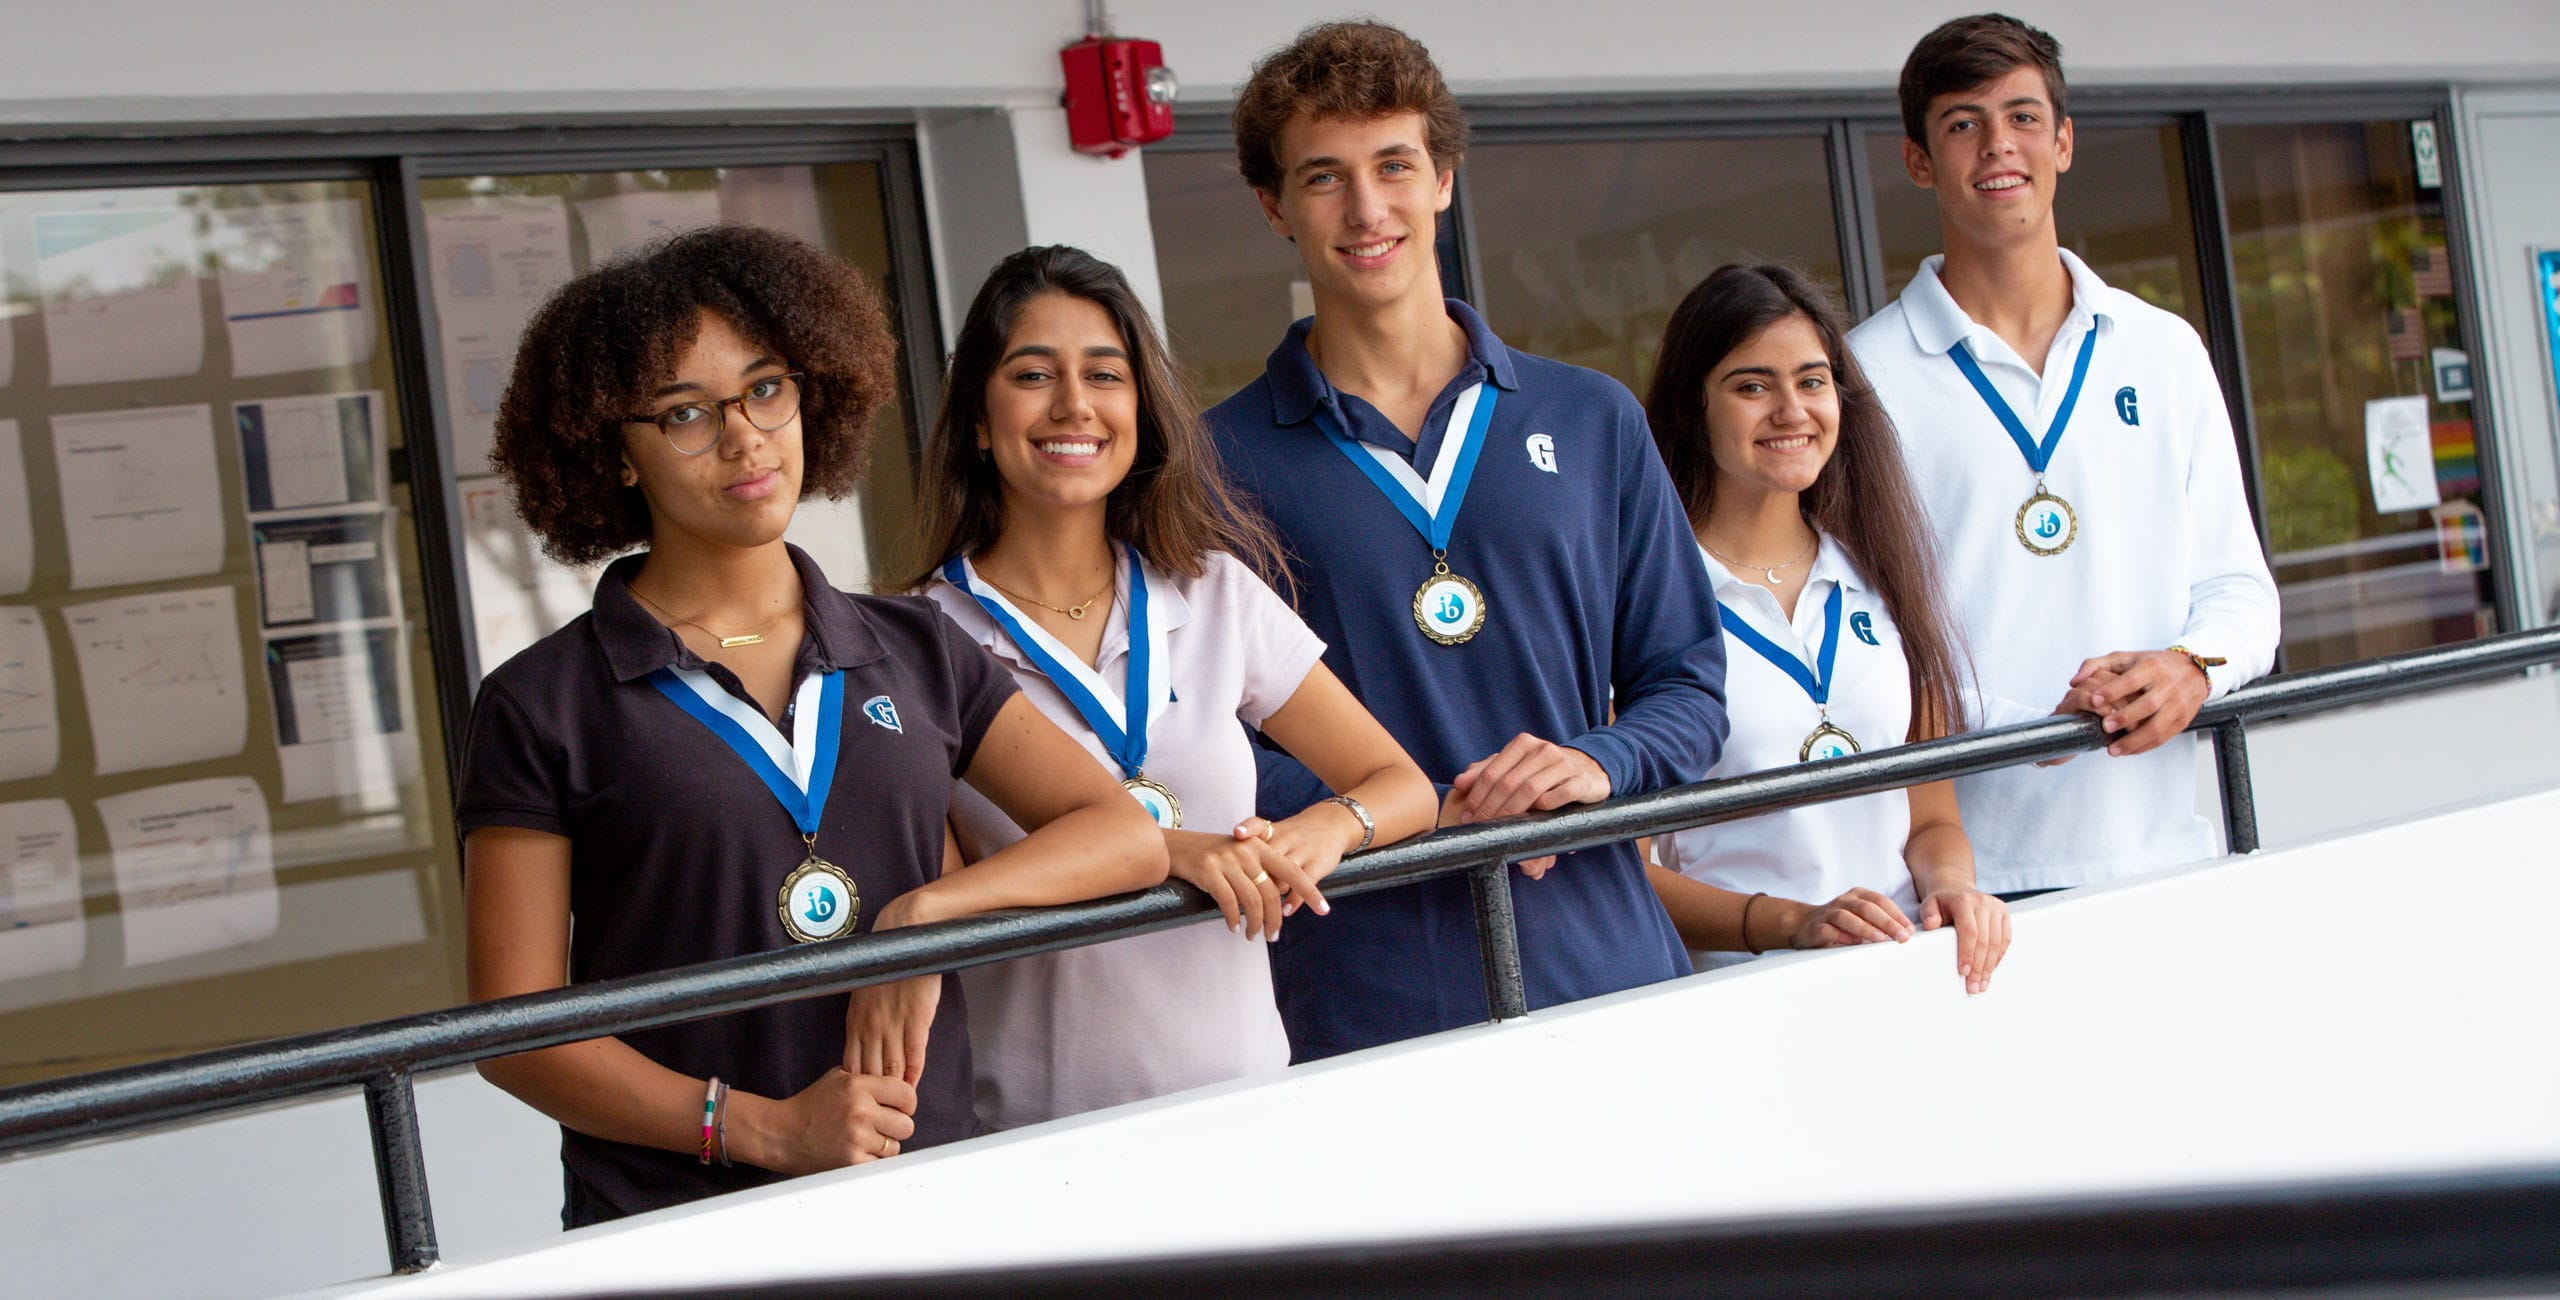 International Baccalaureate Program students standing by railing